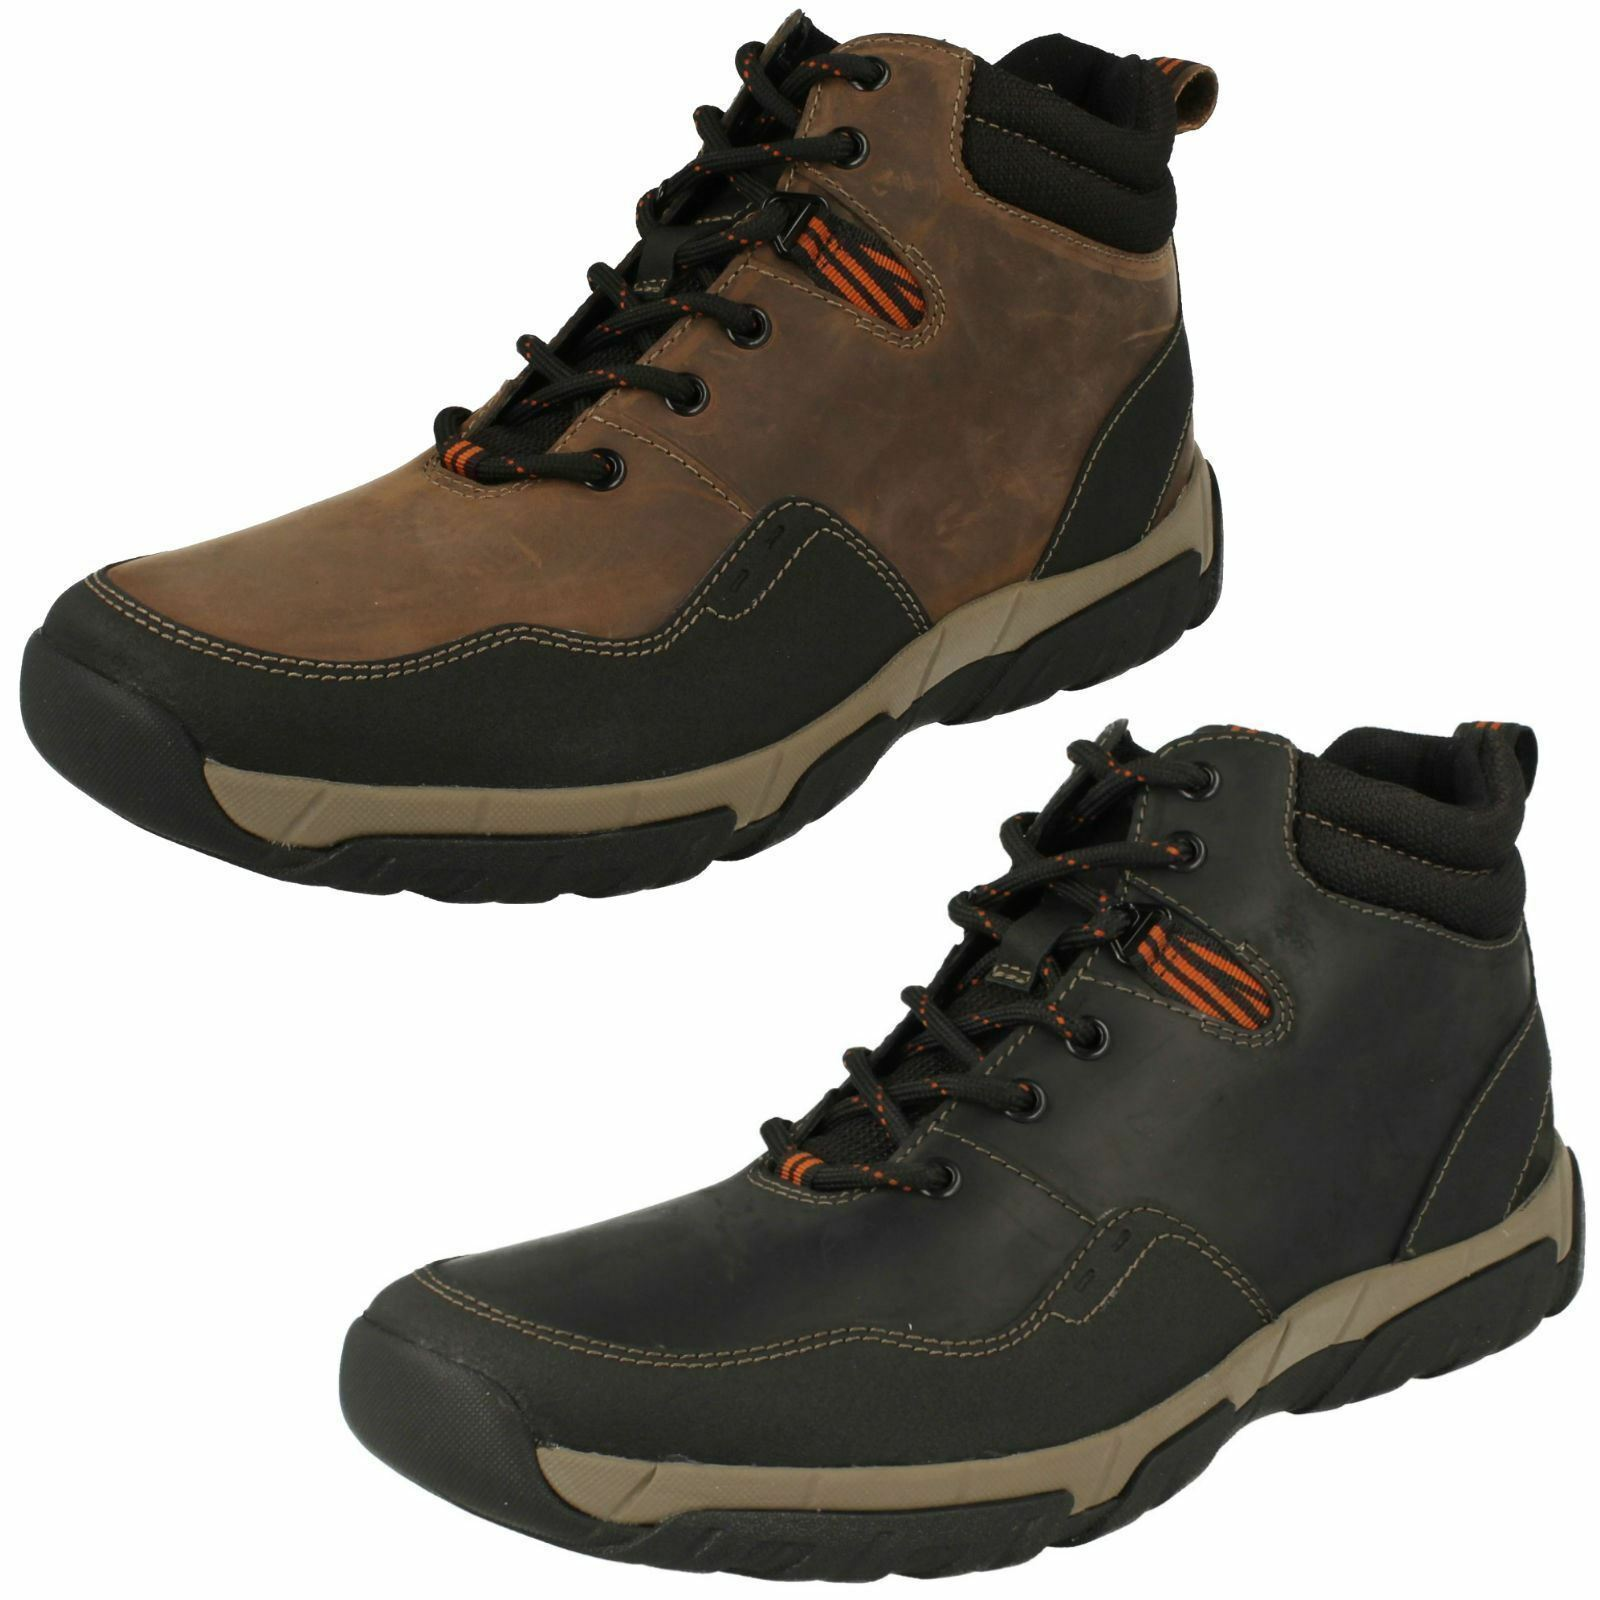 MENS CLARKS LEATHER BOOTS IN 2 COLOURS STYLE WALBECK TOP